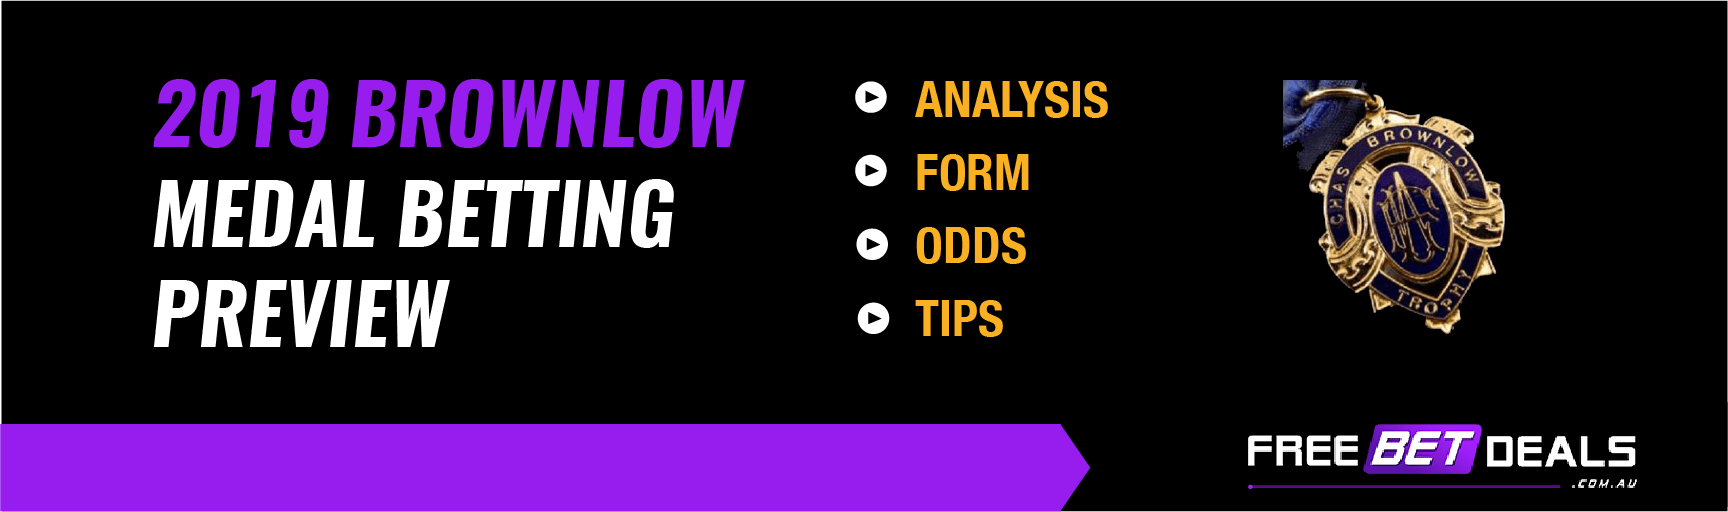 Brownlow Medal betting preview infographic